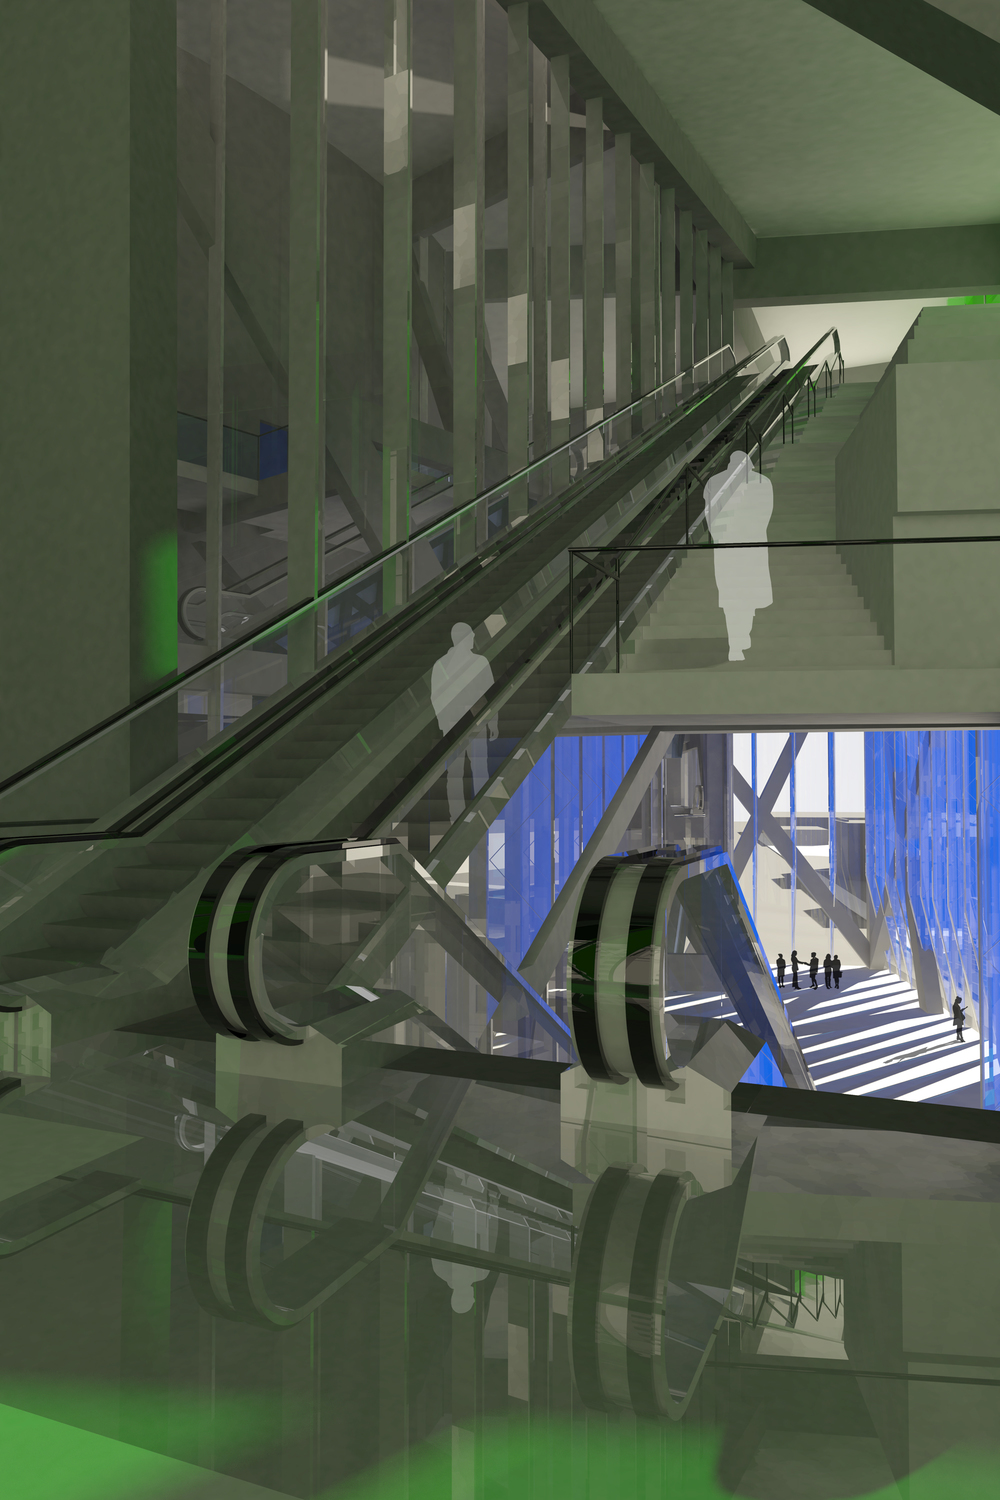 Escalators at intersection of blue and green